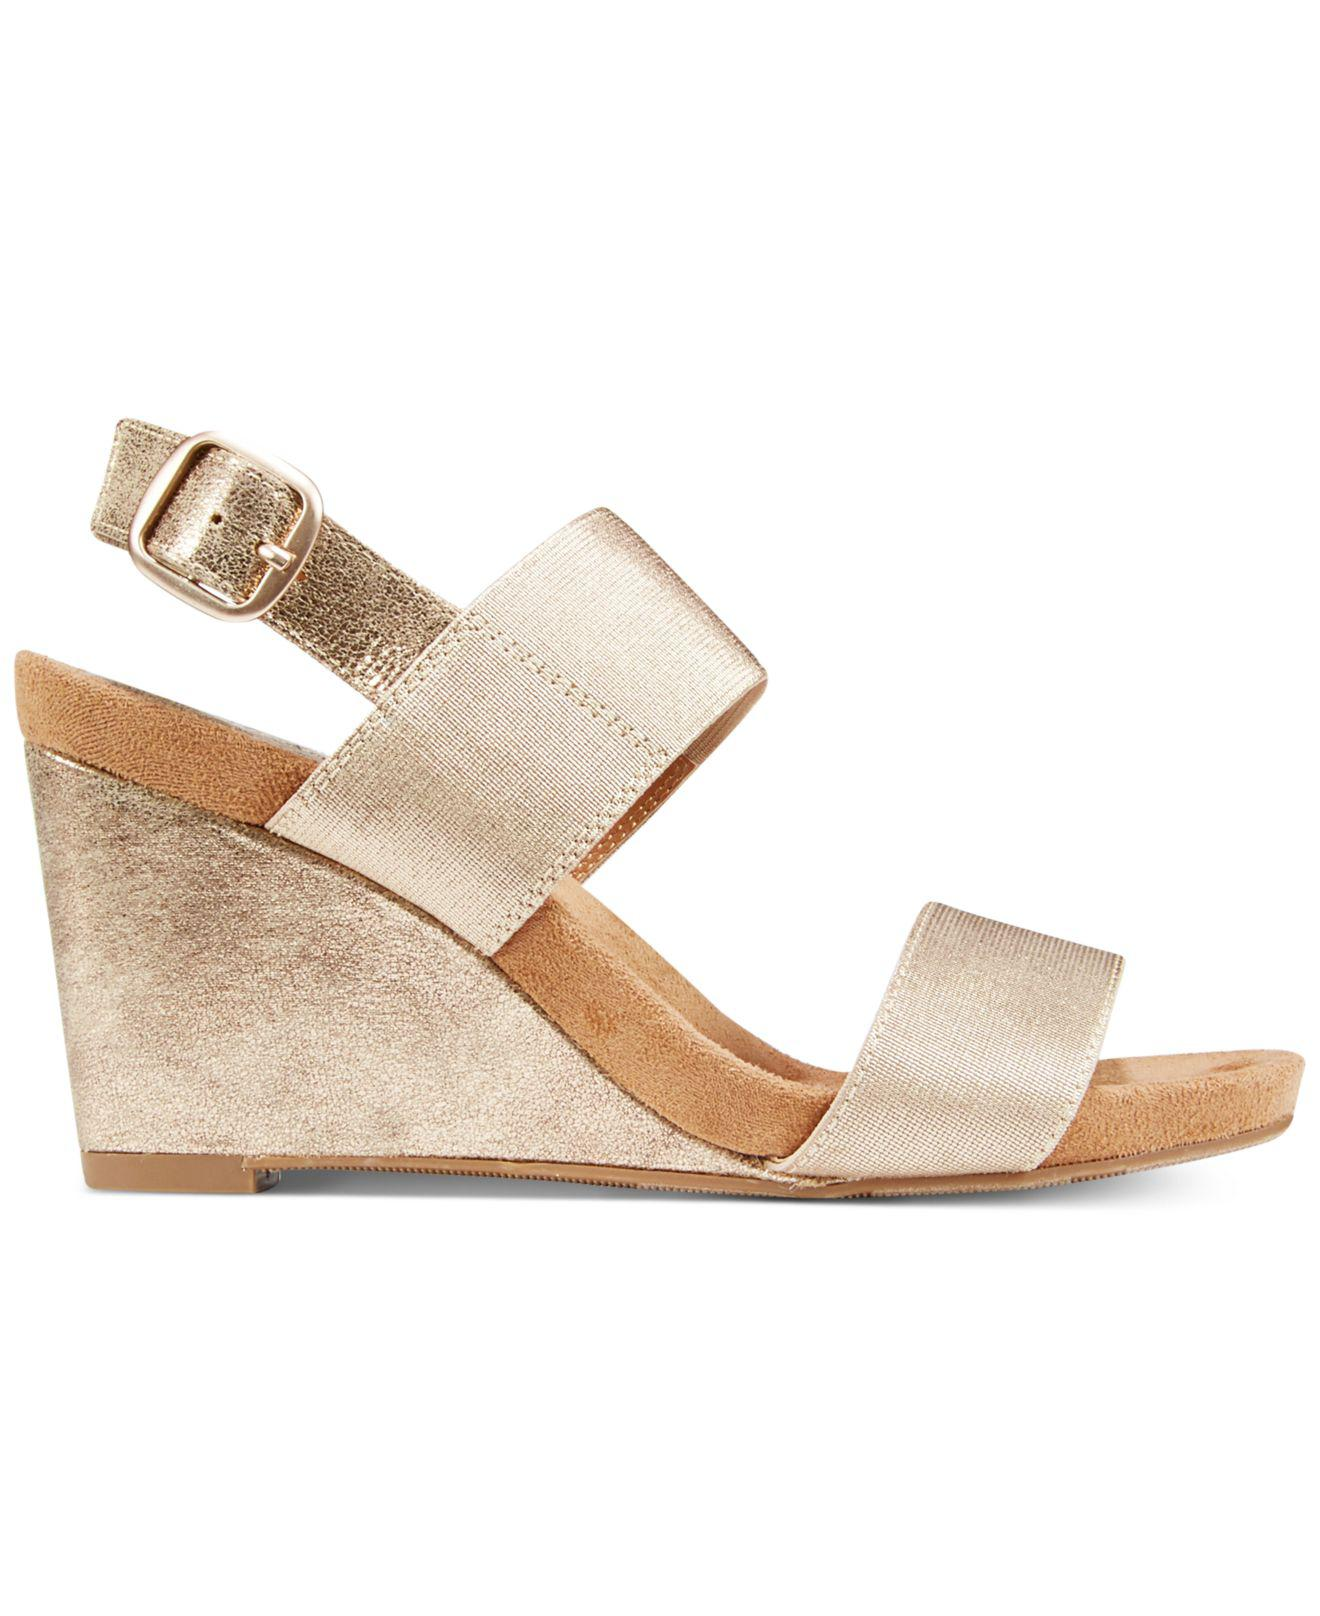 81cee870bd9 Lyst - Style   Co. Fillipi Wedge Sandals in Metallic